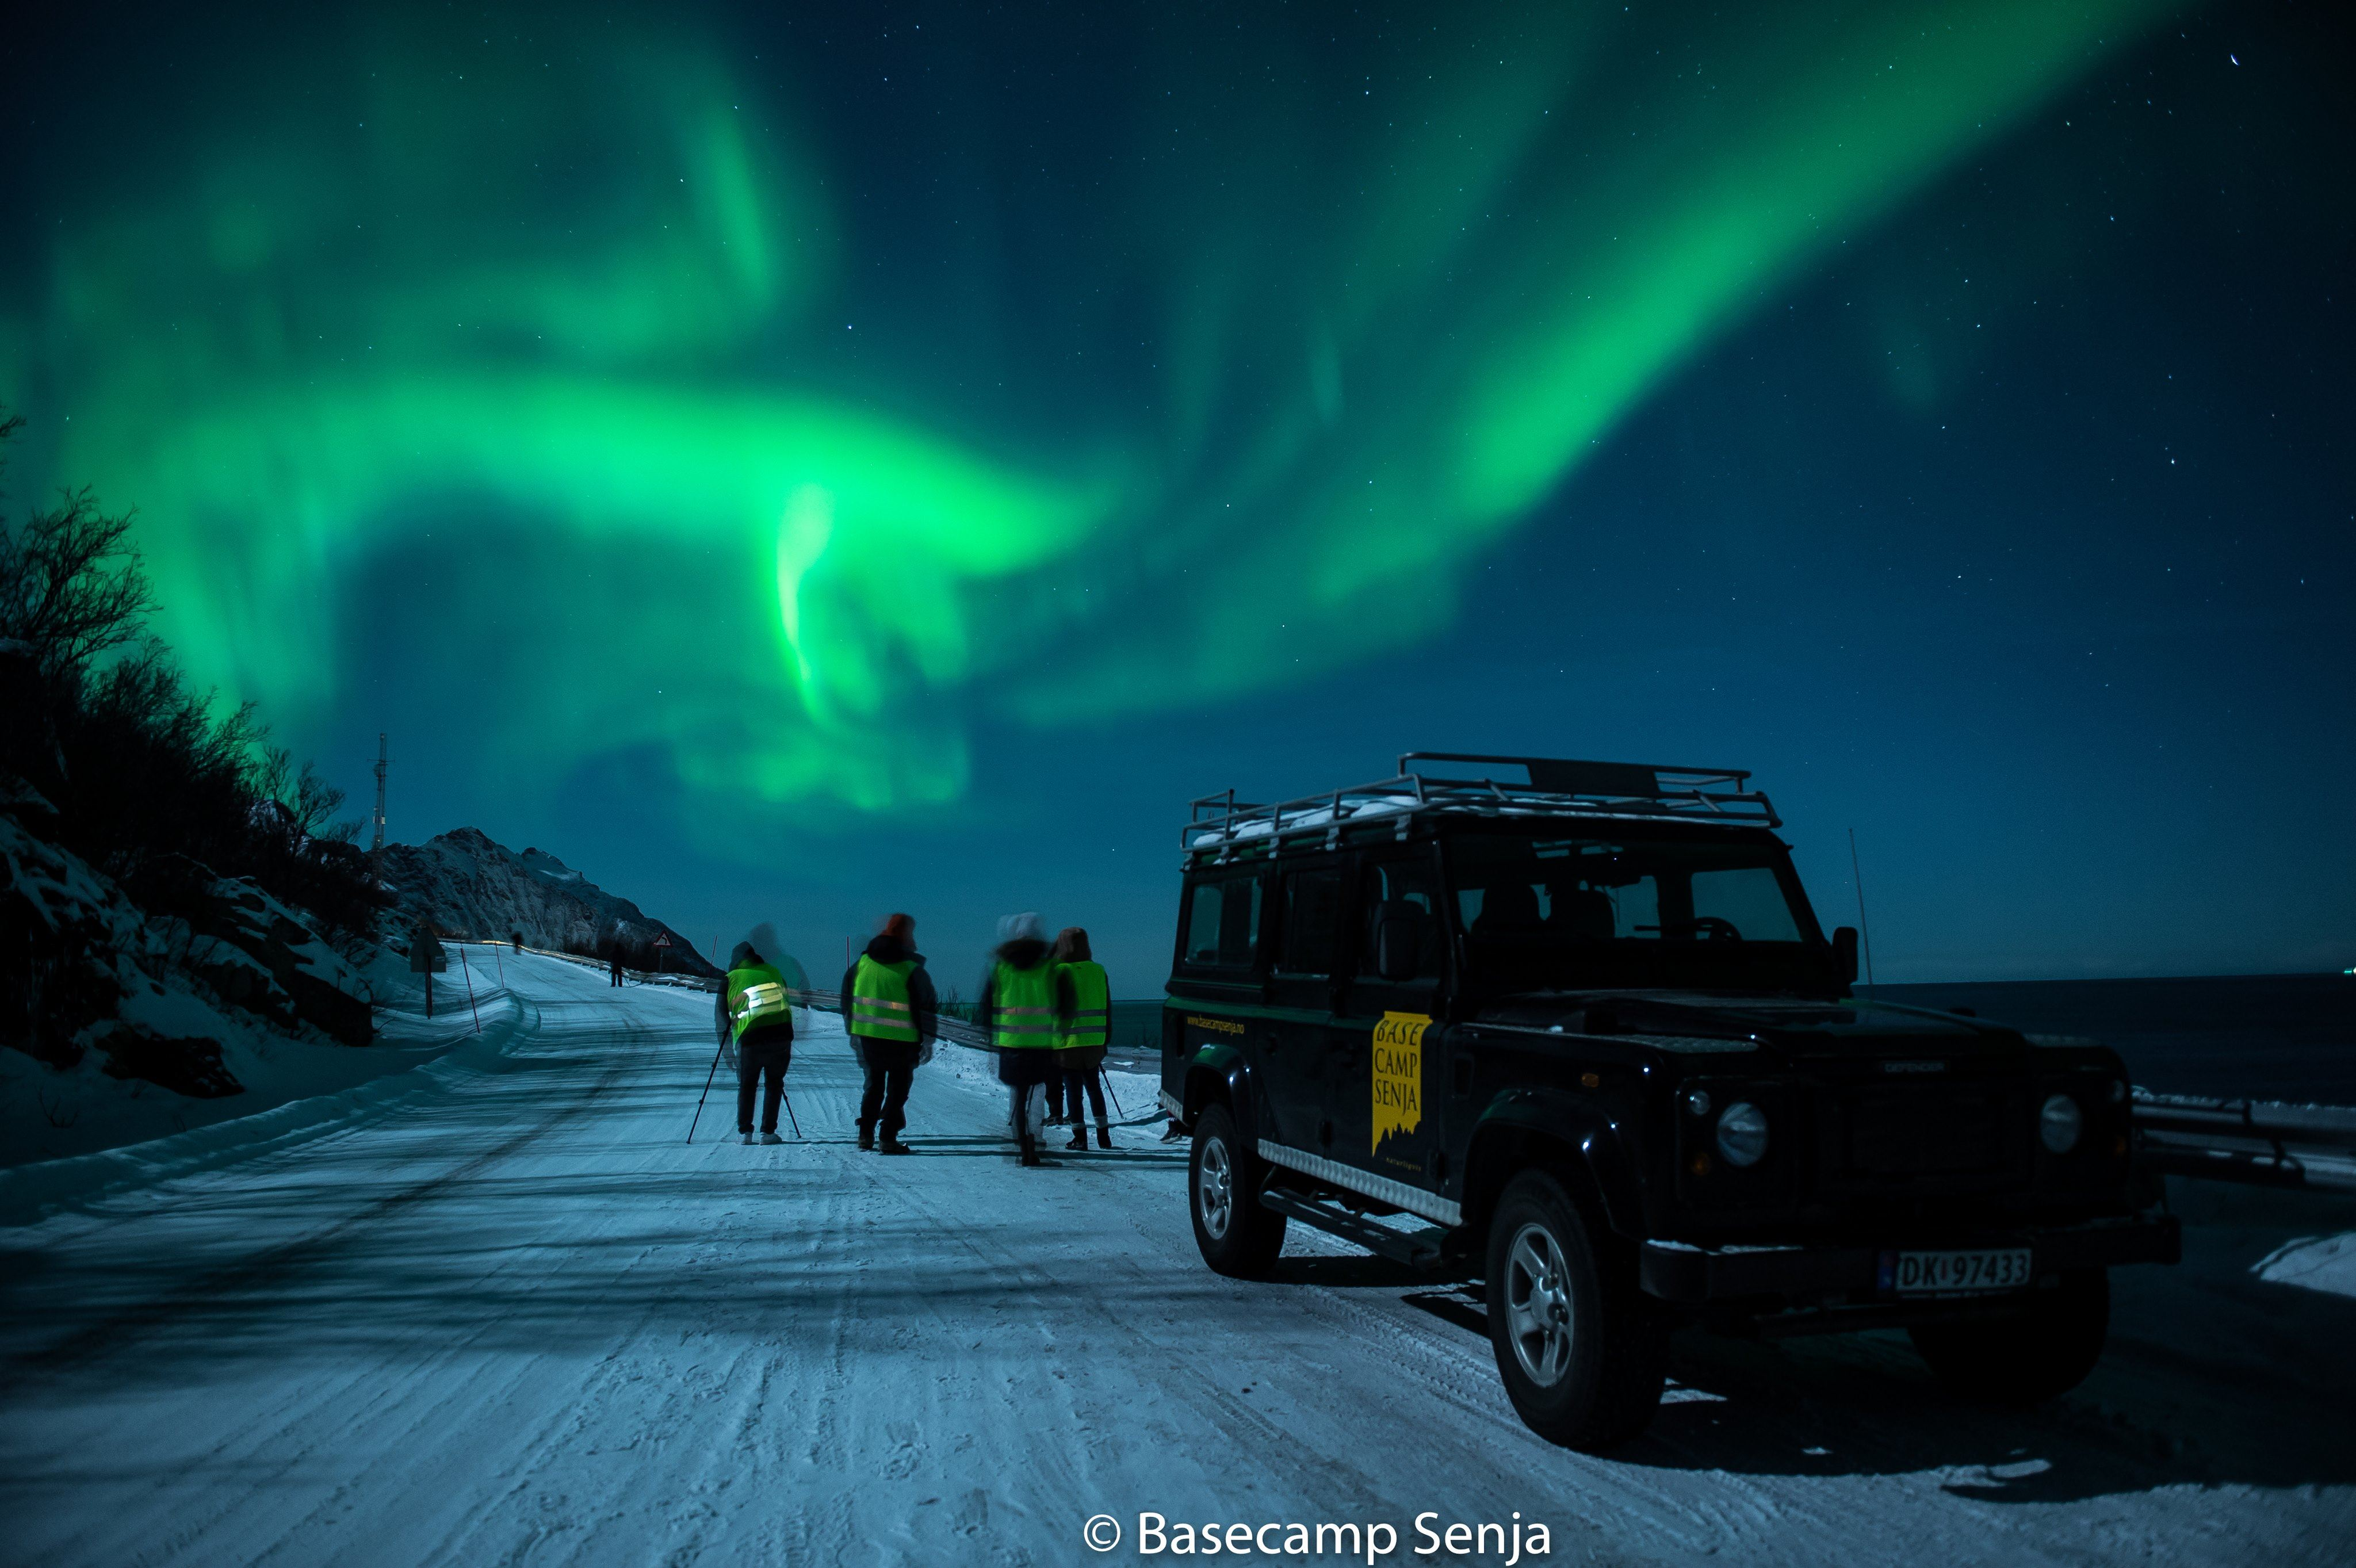 © Basecamp Senja, A truck parked on a snowy road with people and Northern Lights in the background